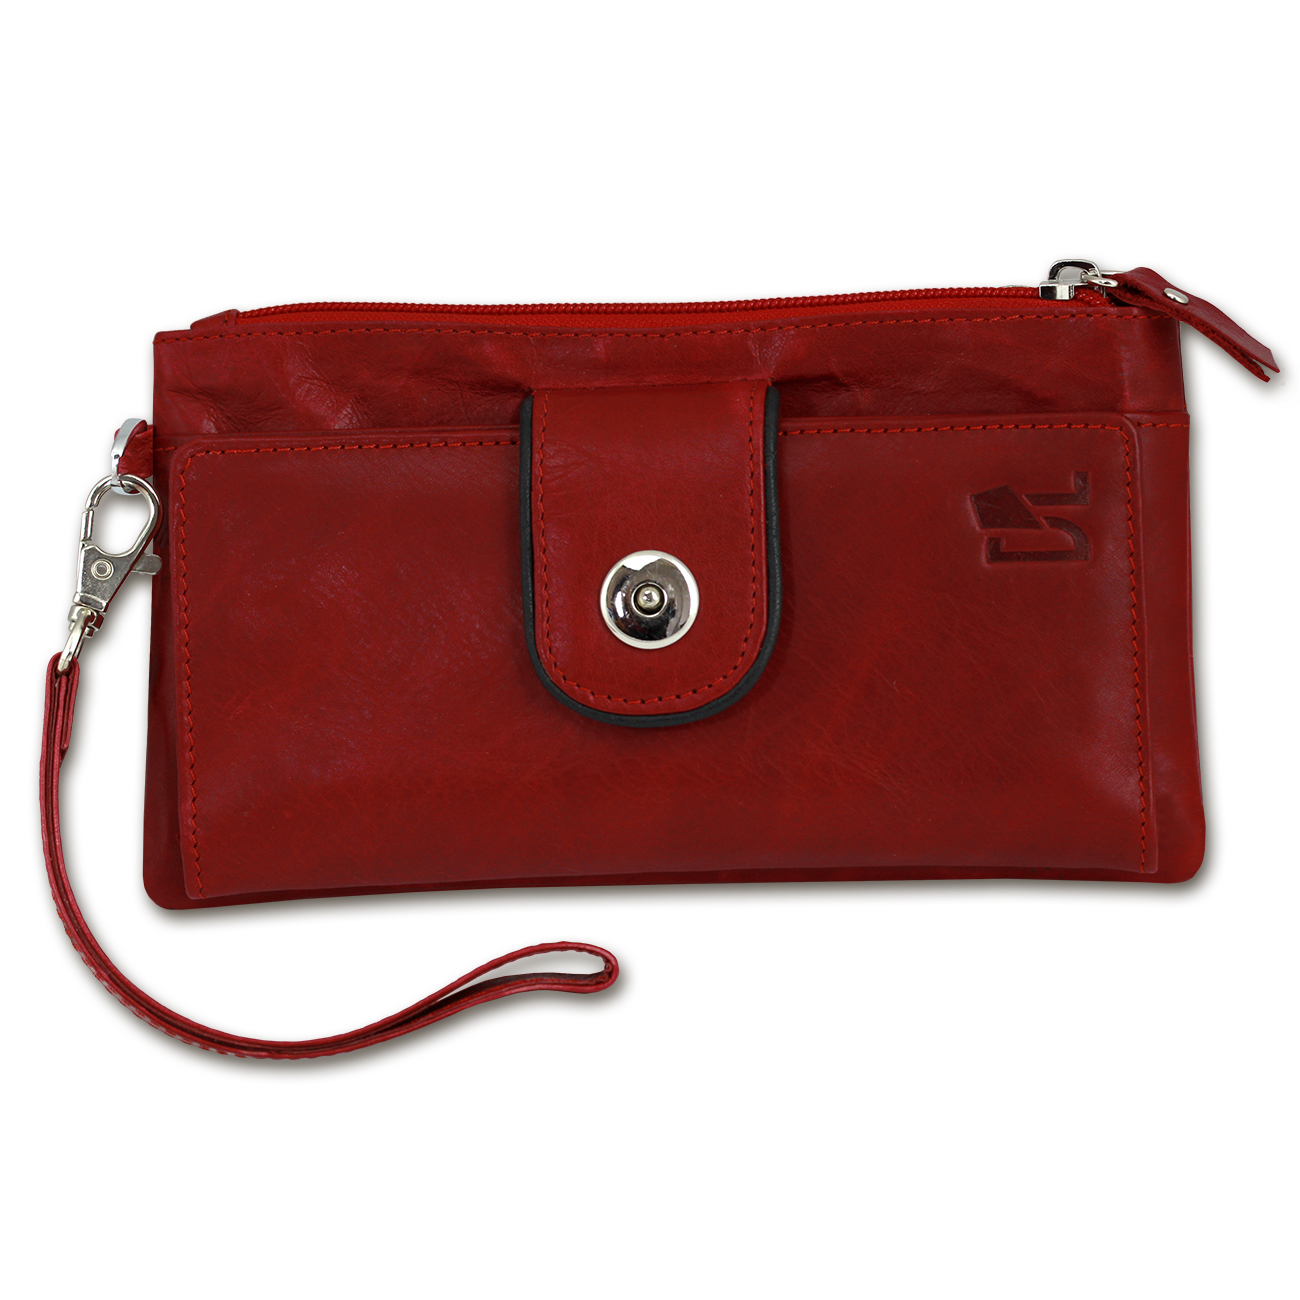 Purse Cell phone case Clutch Leather red Wristlet 3-in-1 ...